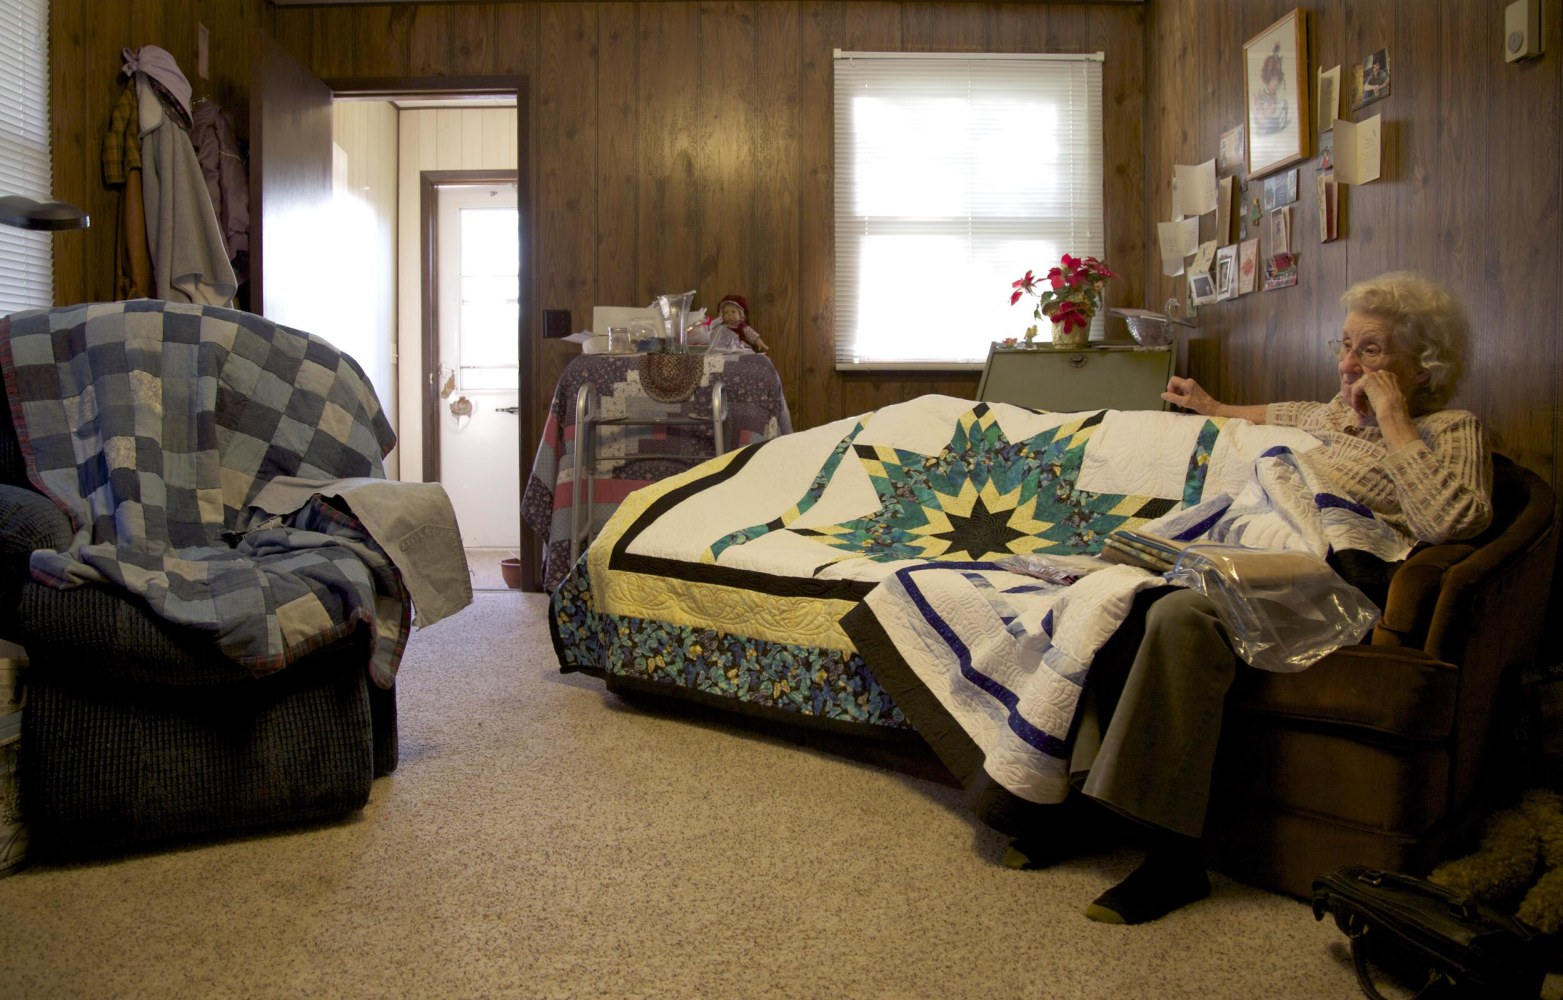 Montana mccone county circle - Donna Yarger 89 In Her Apartment In Circle Mont On May 27 2014 After Her Husband Bob Passed Away In 2011 Yarger No Longer Felt Comfortable Living Out